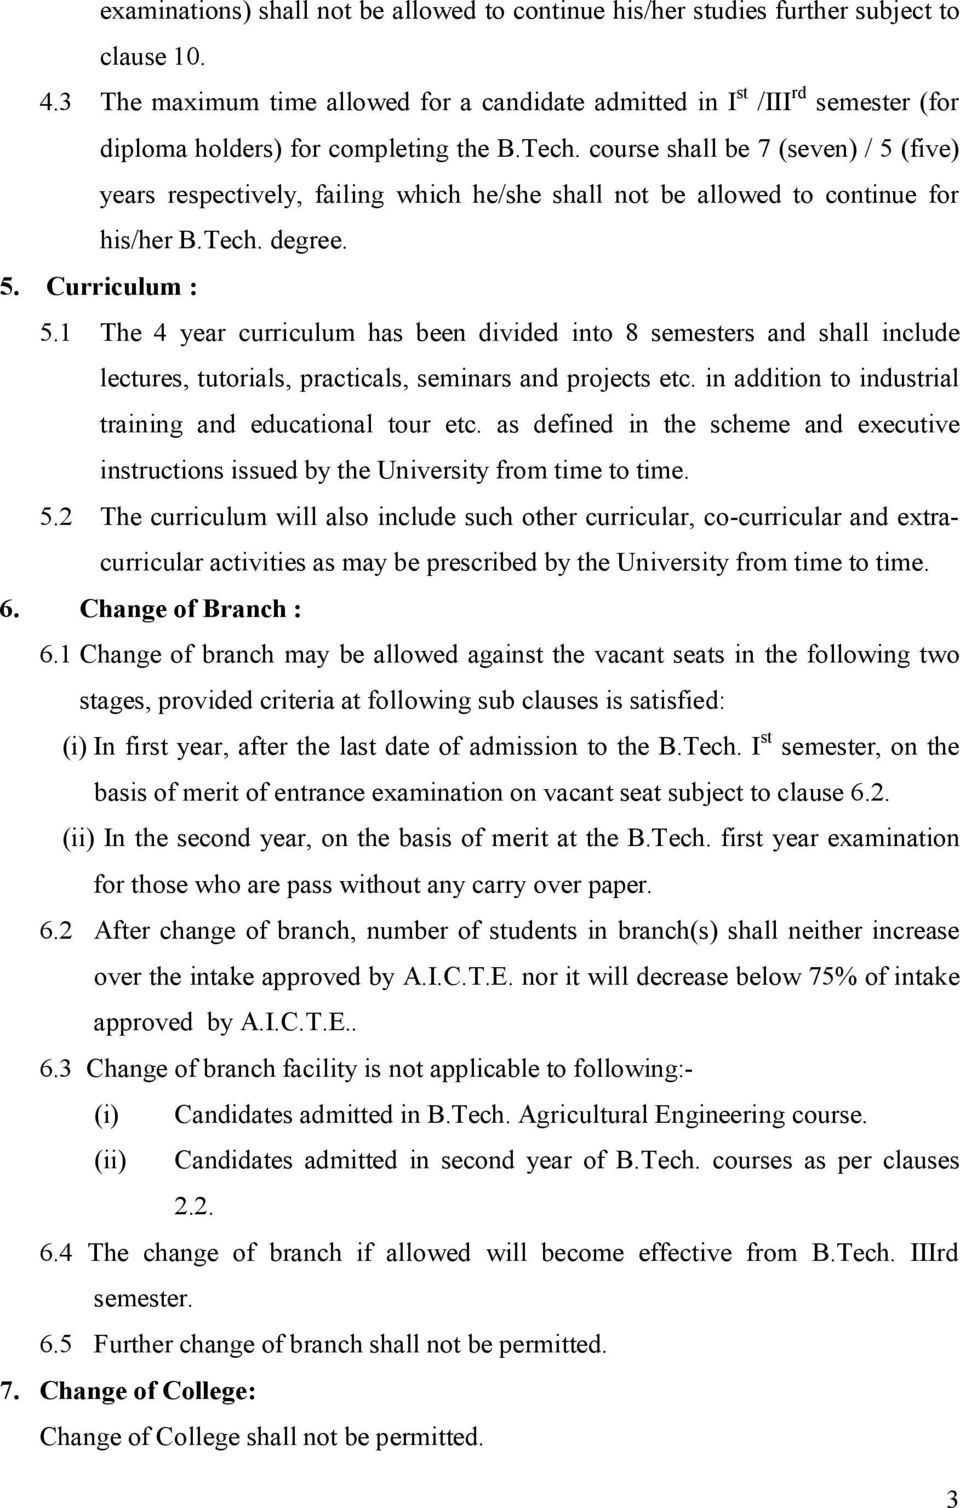 course shall be 7 (seven) / 5 (five) years respectively, failing which he/she shall not be allowed to continue for his/her B.Tech. degree. 5. Curriculum : 5.